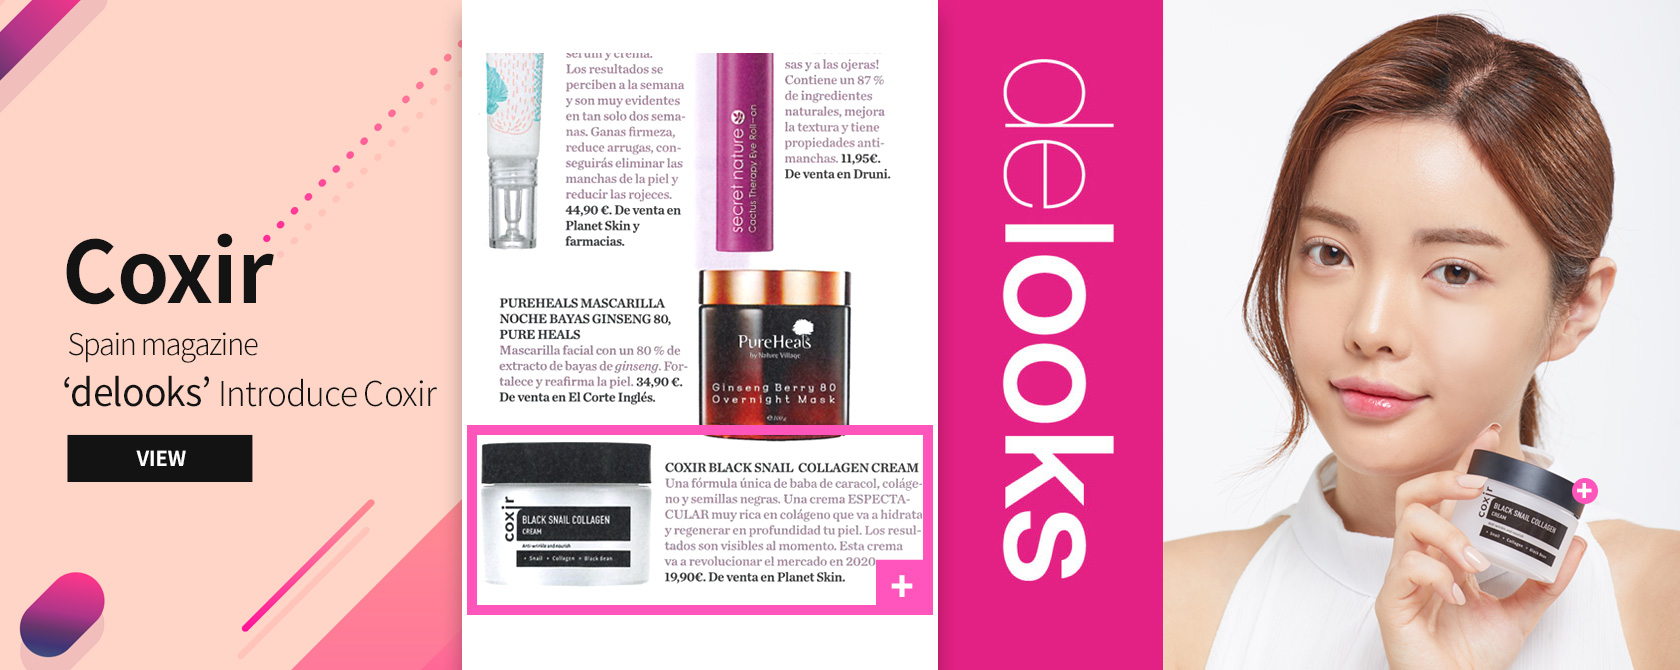 Spain magazine ' delooks ' Introduce Coxir